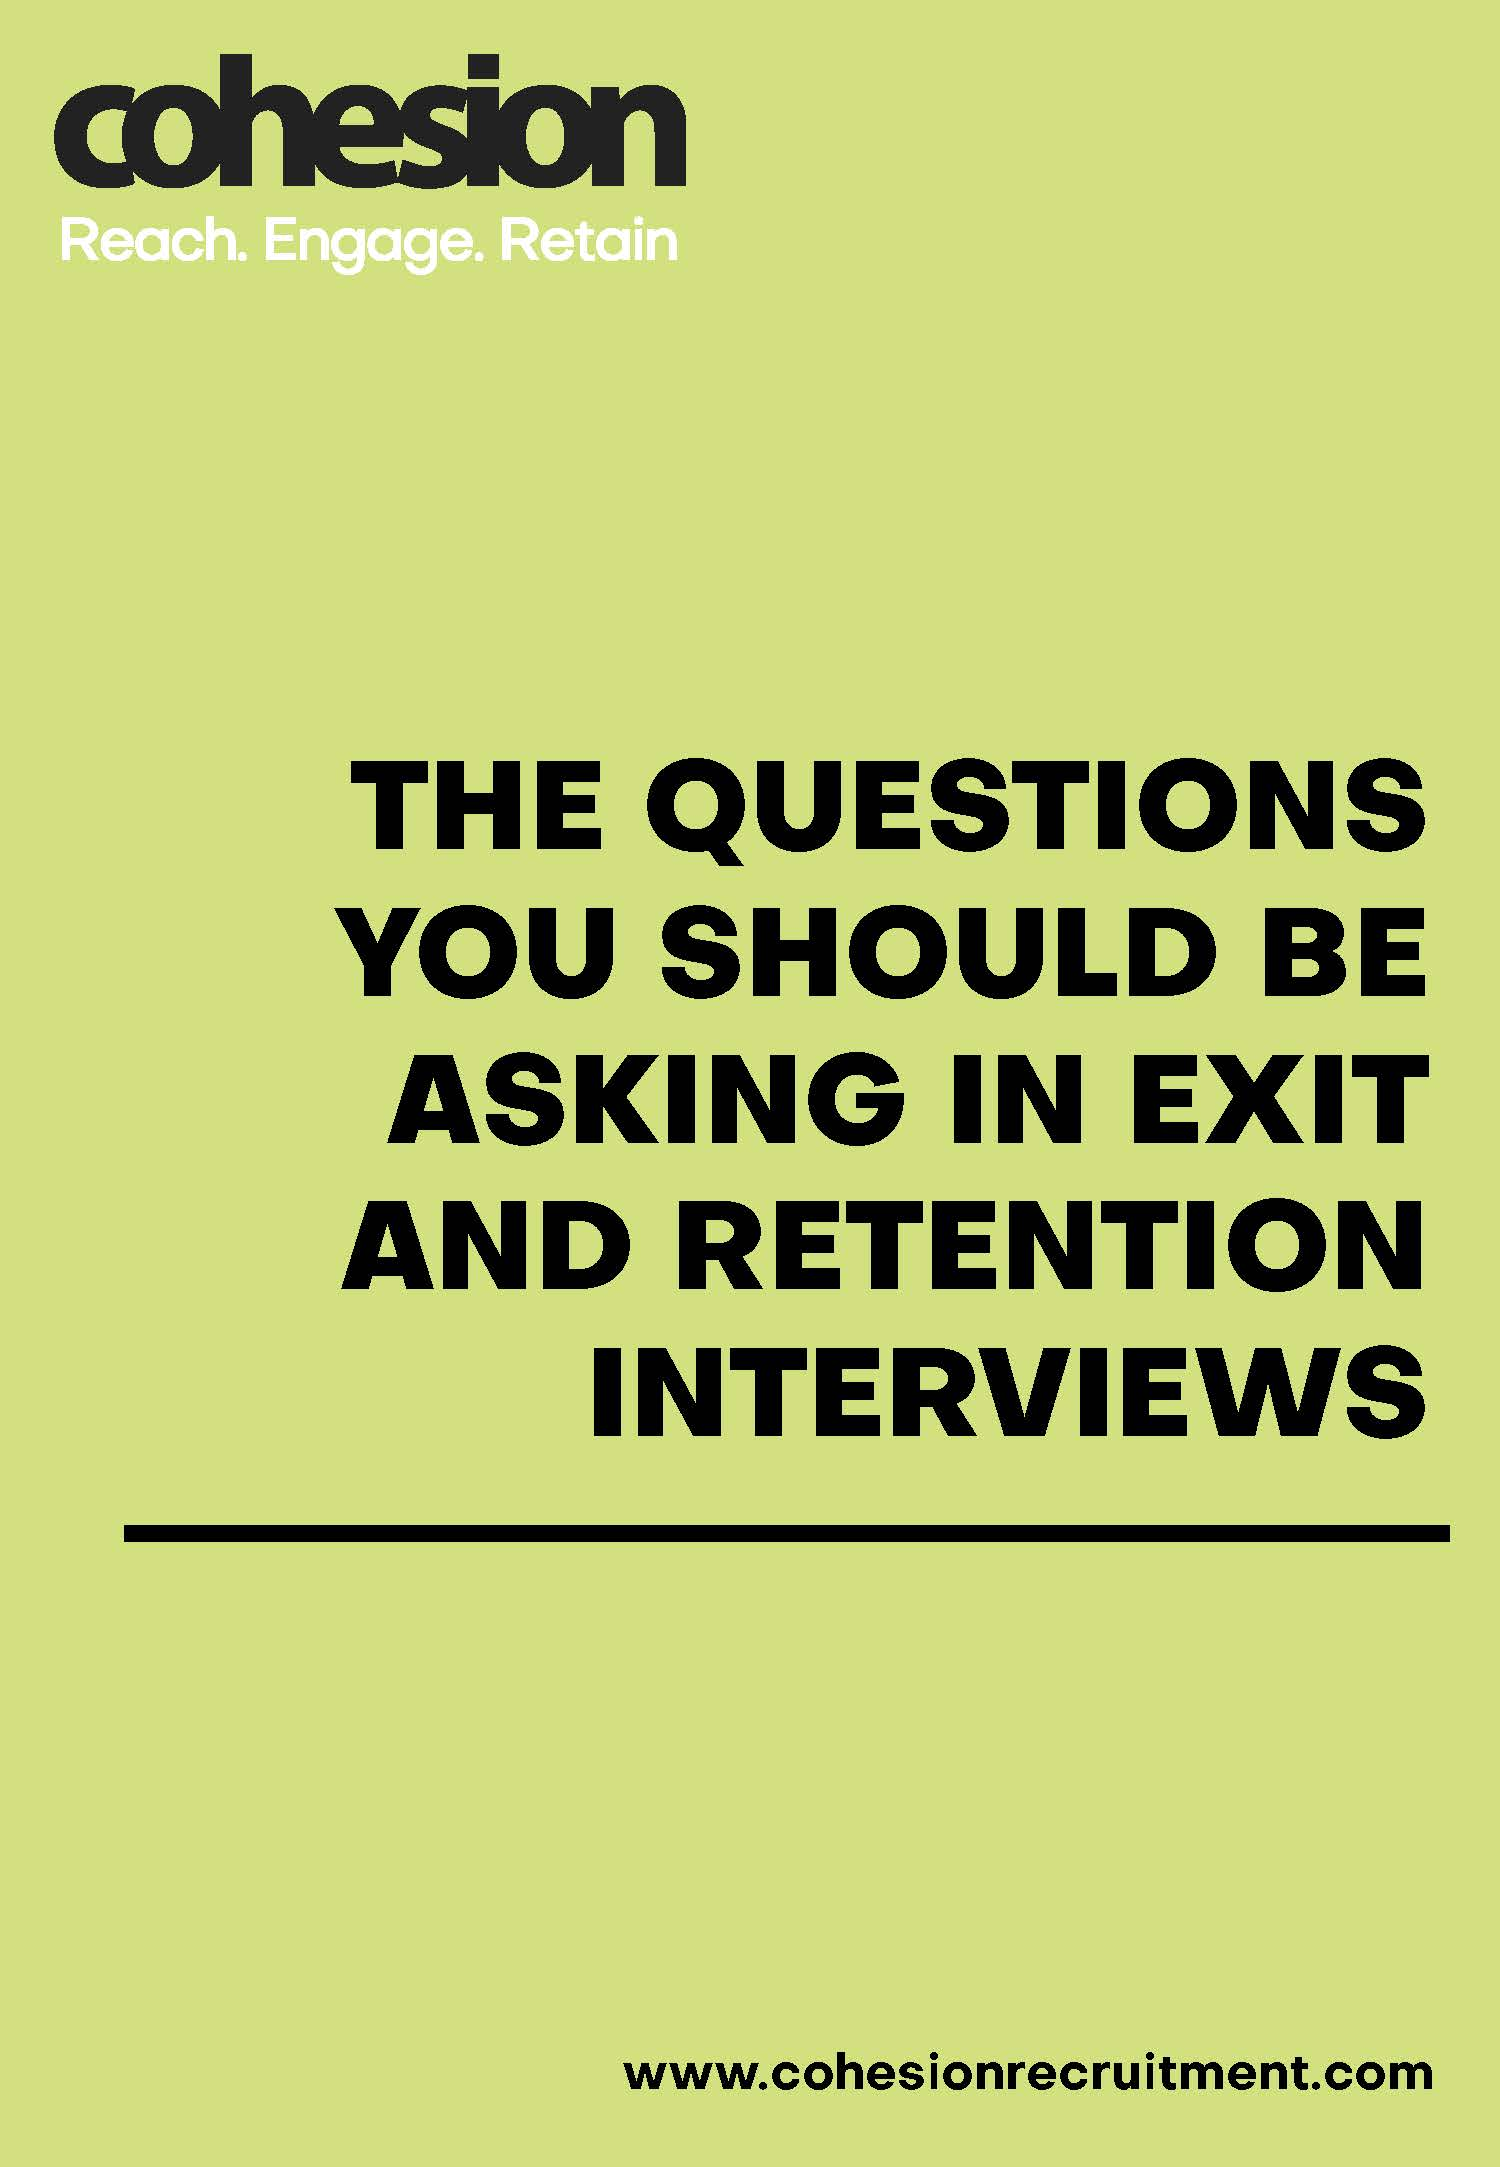 Questions to ask in Exit and Retention Interviews